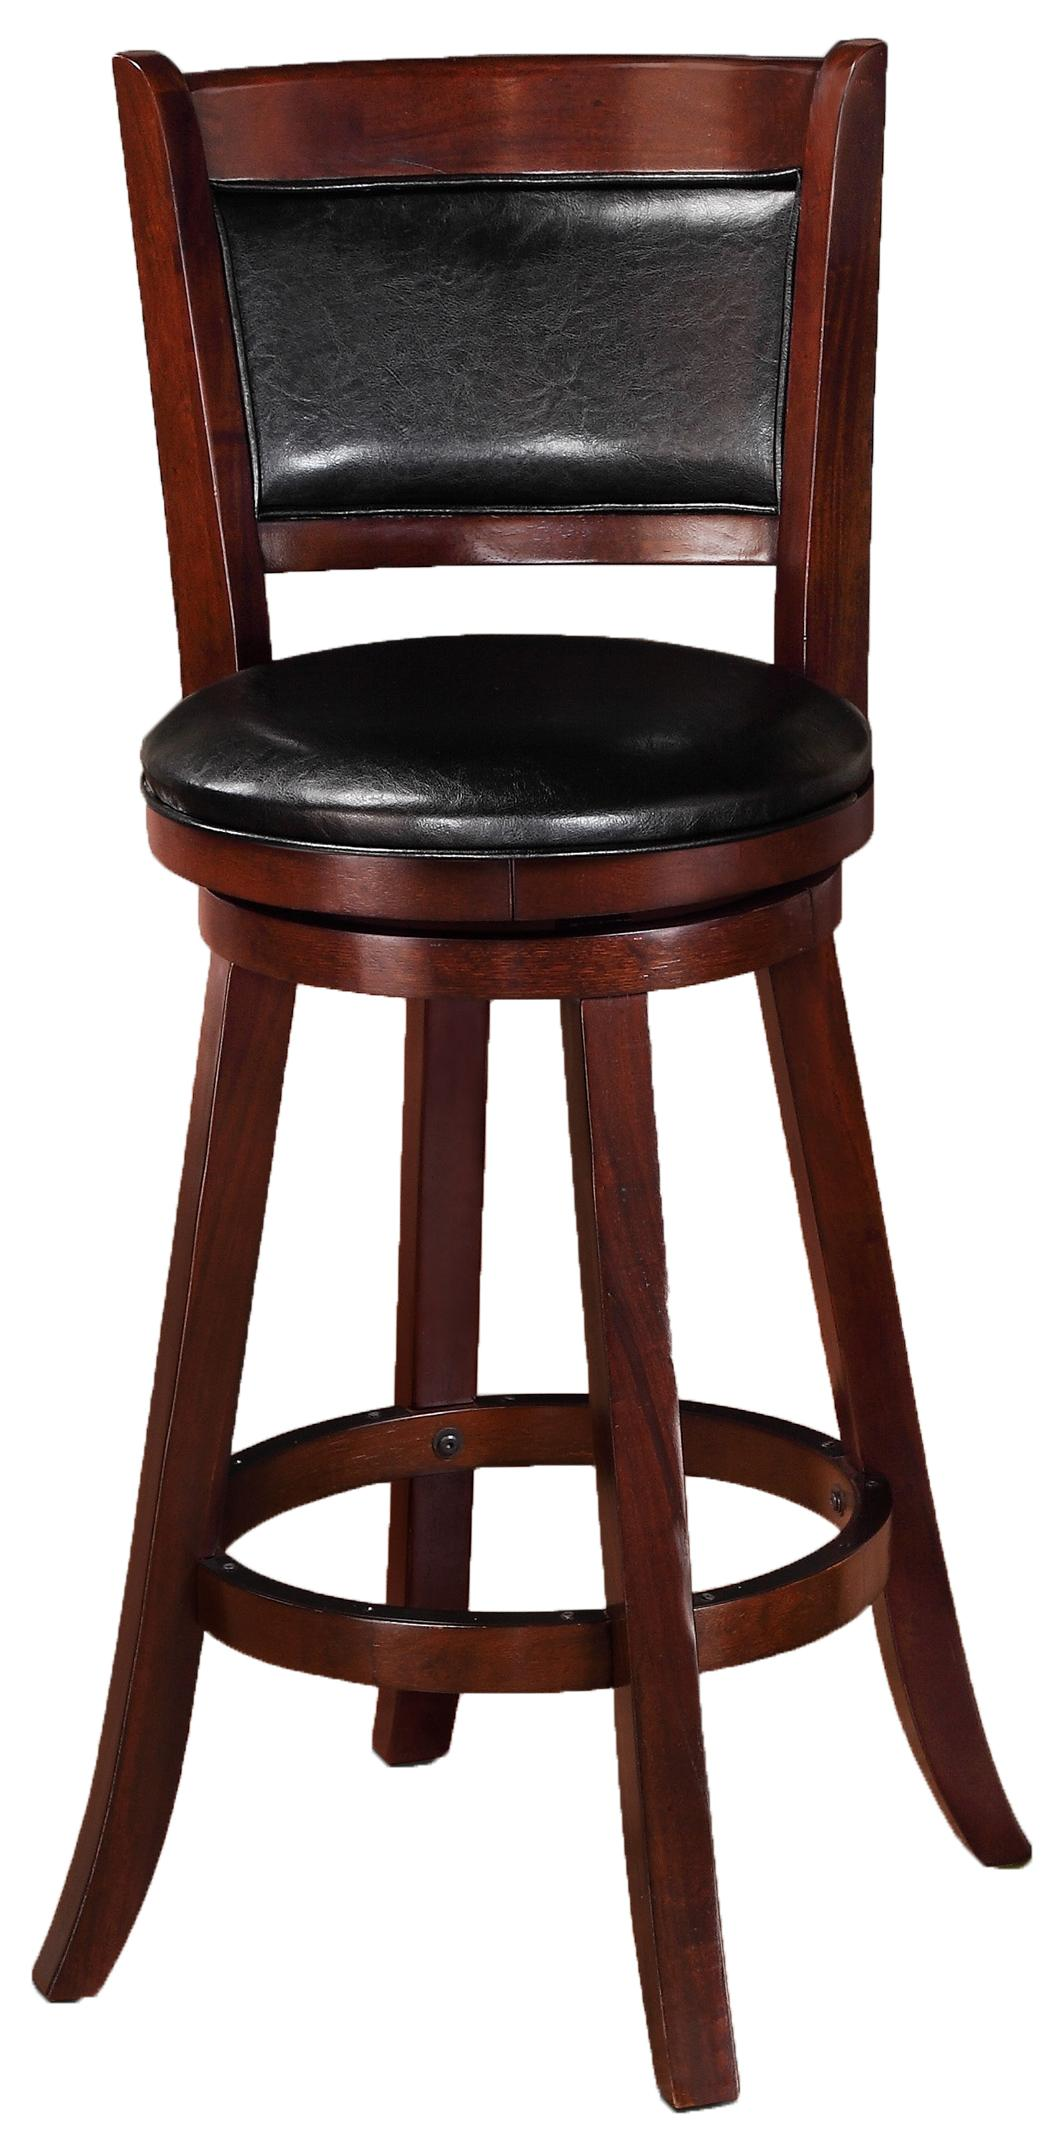 Crown Mark Bar Stools High Swivel Chair - Item Number: 2998C-29